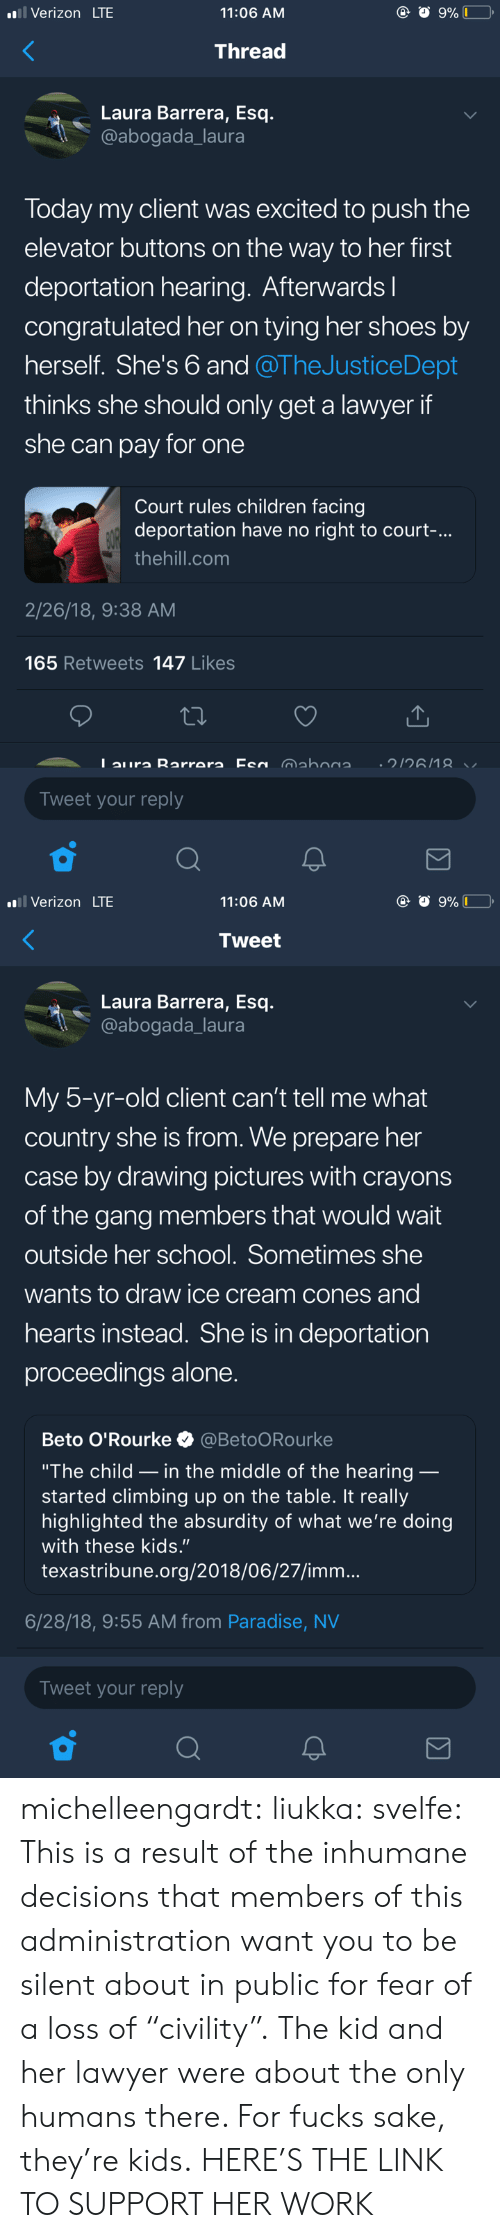 """Deportation: Verizon LTE  11:06 AM  Thread  Laura Barrera, Esq.  @abogada_laura  Today my client was excited to push the  elevator buttons on the way to her first  deportation hearing. Afterwardsl  congratulated her on tying her shoes by  herself. She's 6 and @TheJusticeDept  thinks she should only get a lawyer if  she can pay for one  Court rules children facing  deportation have no right to court-.  thehill.com  2/26/18, 9:38 AM  165 Retweets 147 Likes  Tweet your reply   Verizon LTE  11:06 AM  Tweet  Laura Barrera, Esq.  @abogada_laura  My 5-yr-old client can't tell me what  country she is from. We prepare her  case by drawing pictures with crayons  of the gang members that would wait  outside her school. Sometimes she  wants to draw ice cream cones and  hearts instead. She is in deportation  proceedings alone  Beto O'Rourke @BetoORourke  """"The child _ in the middle of the hearing  started climbing up on the table. It really  highlighted the absurdity of what we're doing  with these kids.""""  texastribune.org/2018/06/27/imm...  6/28/18, 9:55 AM from Paradise, NV  Tweet your reply michelleengardt:  liukka:  svelfe: This is a result of the inhumane decisions that members of this administration want you to be silent about in public for fear of a loss of """"civility"""".  The kid and her lawyer were about the only humans there.  For fucks sake, they're kids.  HERE'S THE LINK TO SUPPORT HER WORK"""